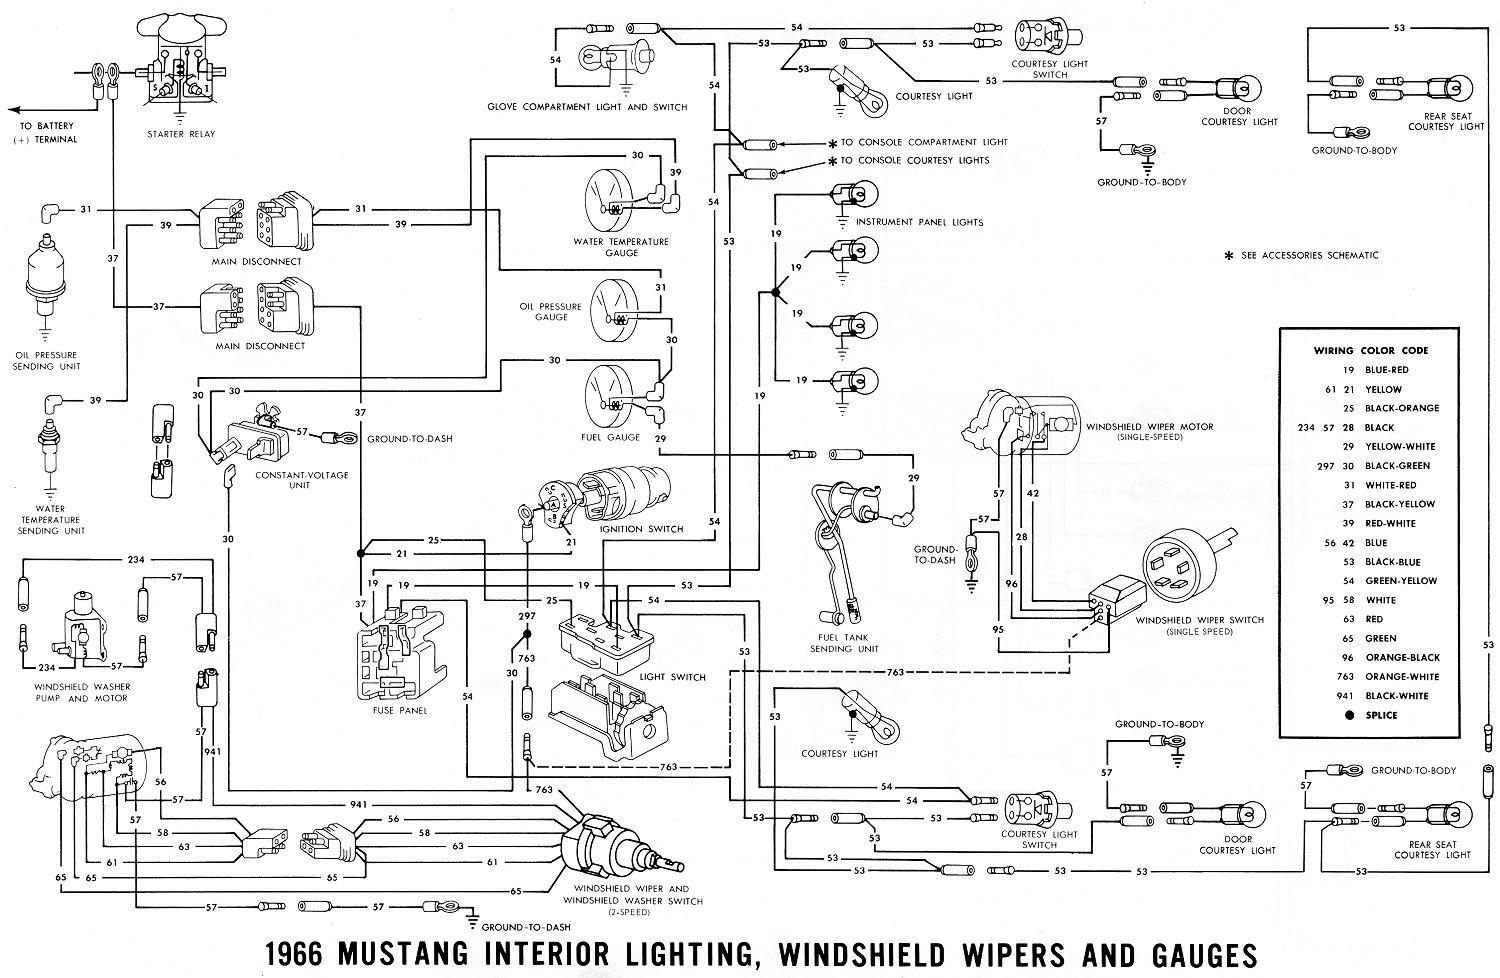 1966 mustang alternator wiring diagram lelu 39s 66 wiring diagrams 1966 mustang alternator wiring diagram lelu 39s 66 [ 1500 x 978 Pixel ]